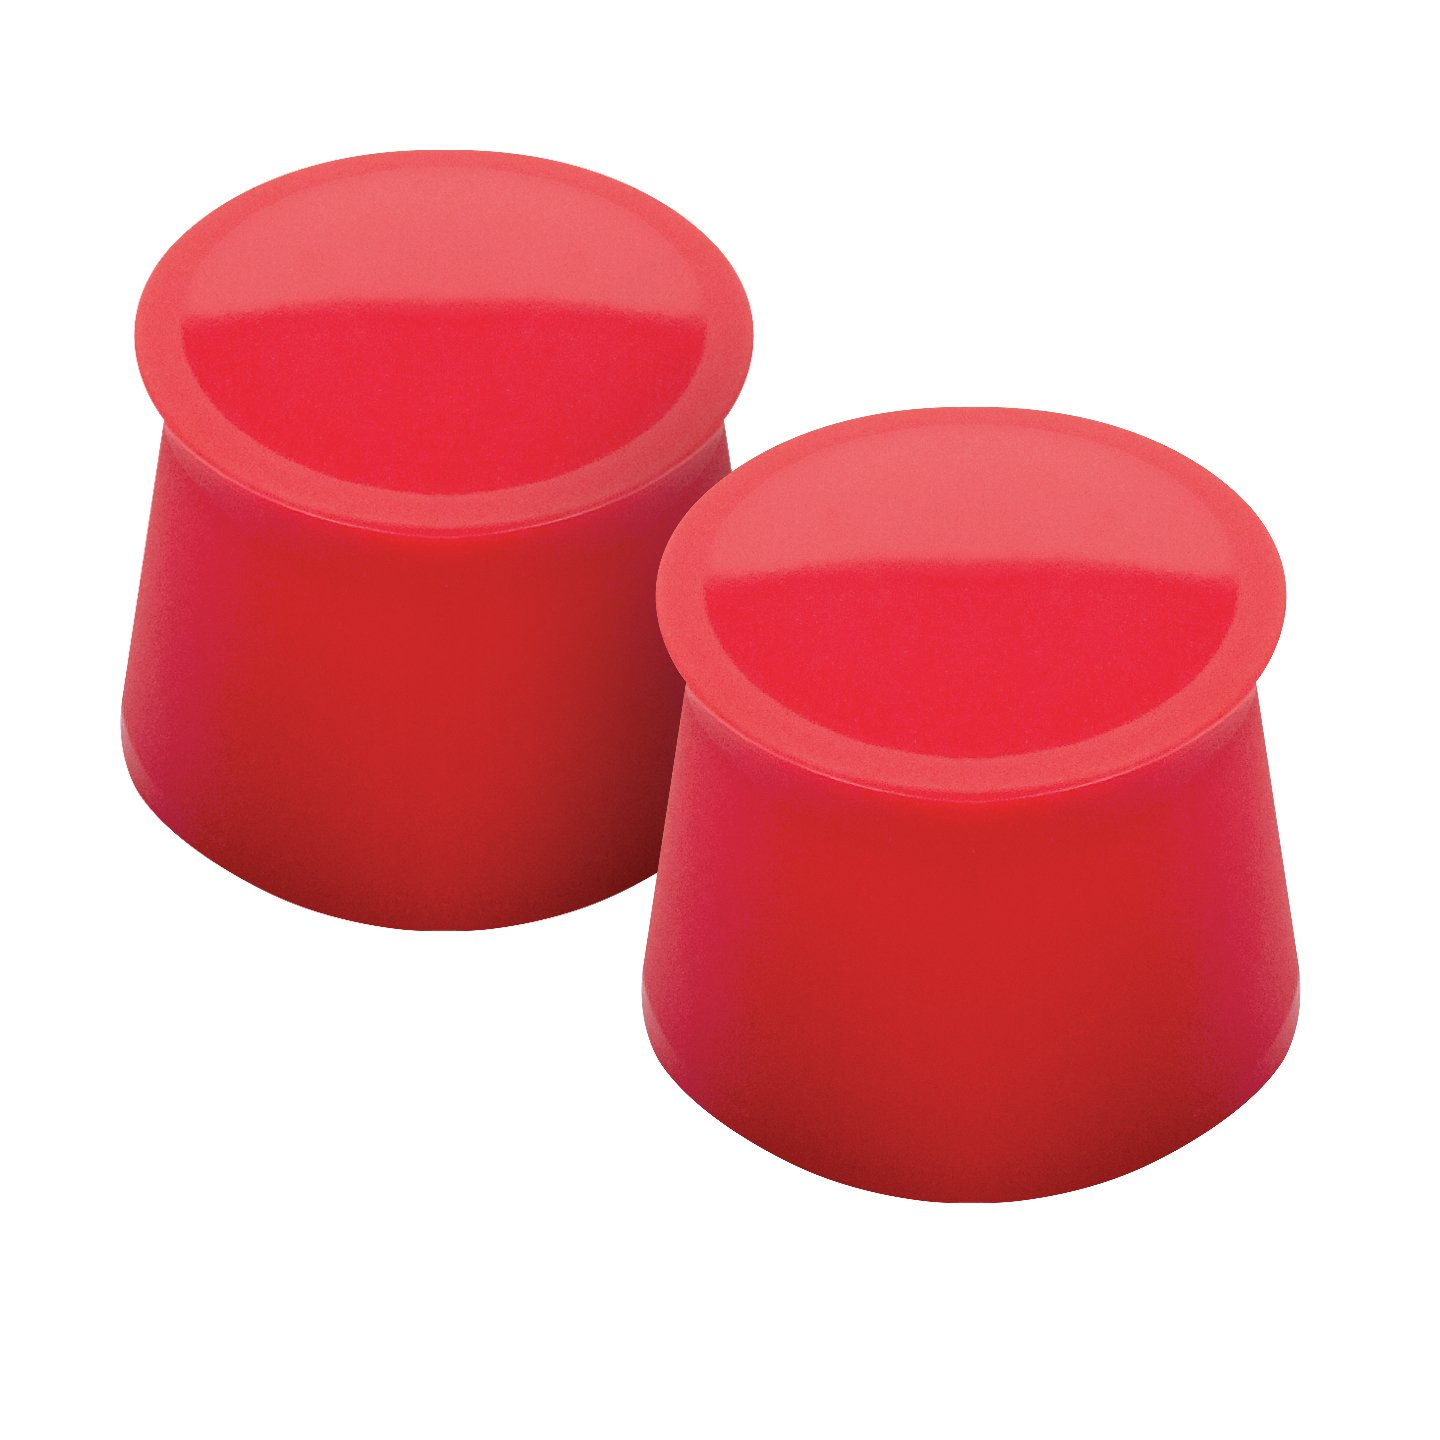 Tovolo Wine Cap Candy Apple Set of 2 81-7888